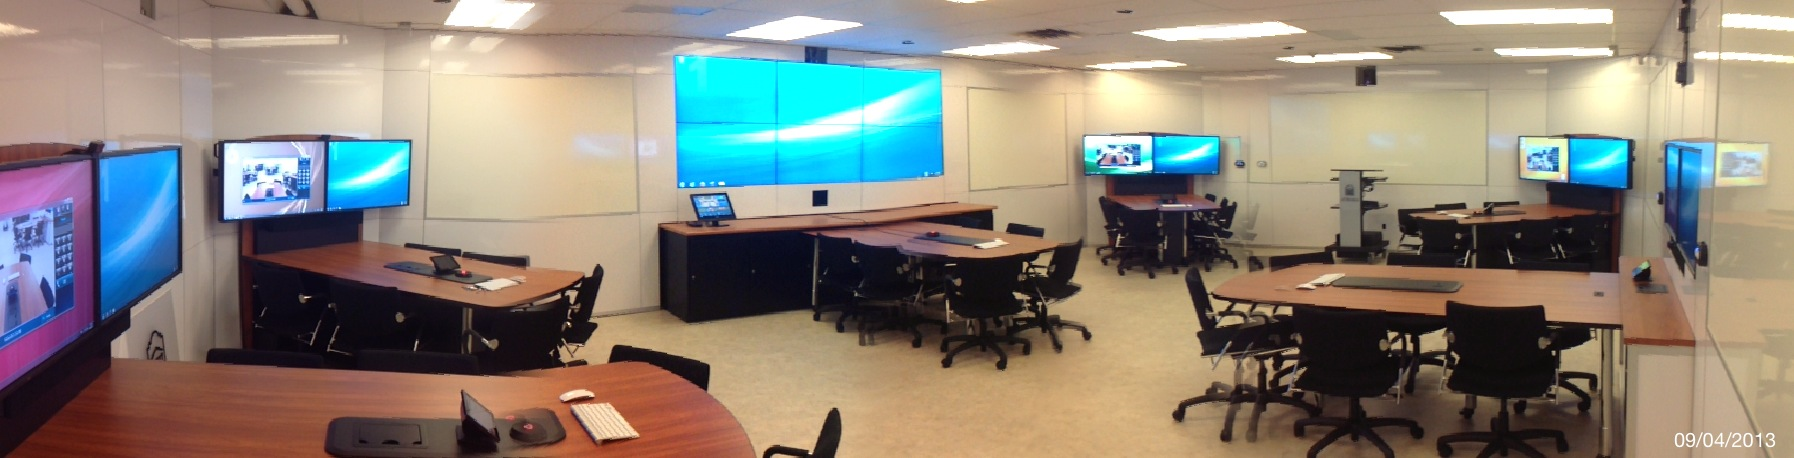 The Active Learning Room (LPR 286)